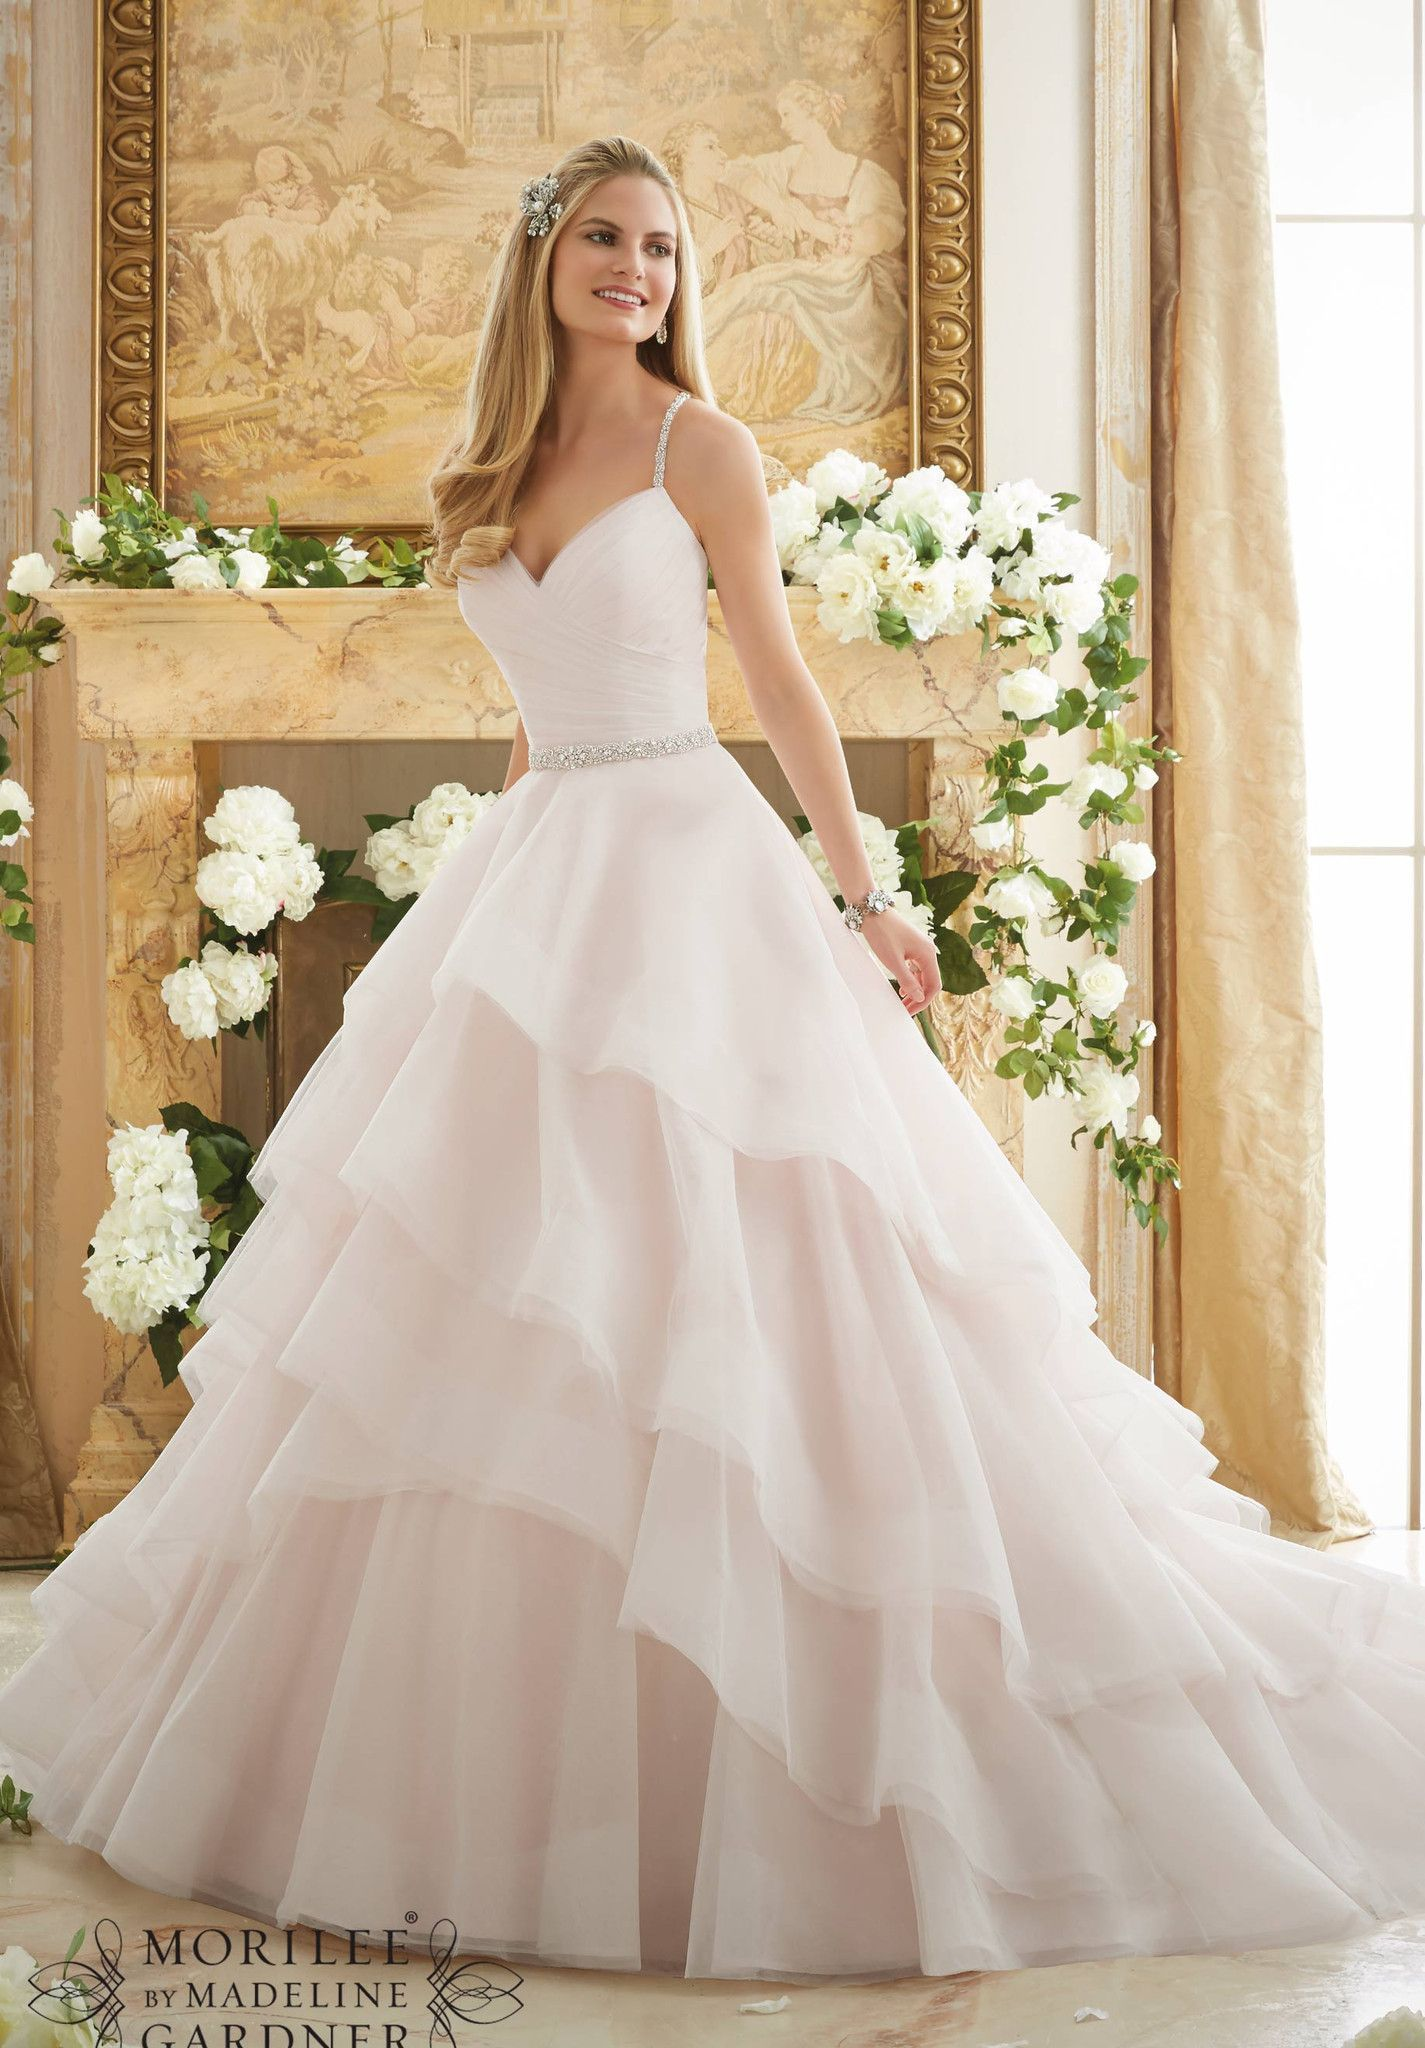 Emo wedding dresses  Mori Lee    All Dressed Up Bridal Gown  Wedding Makeup